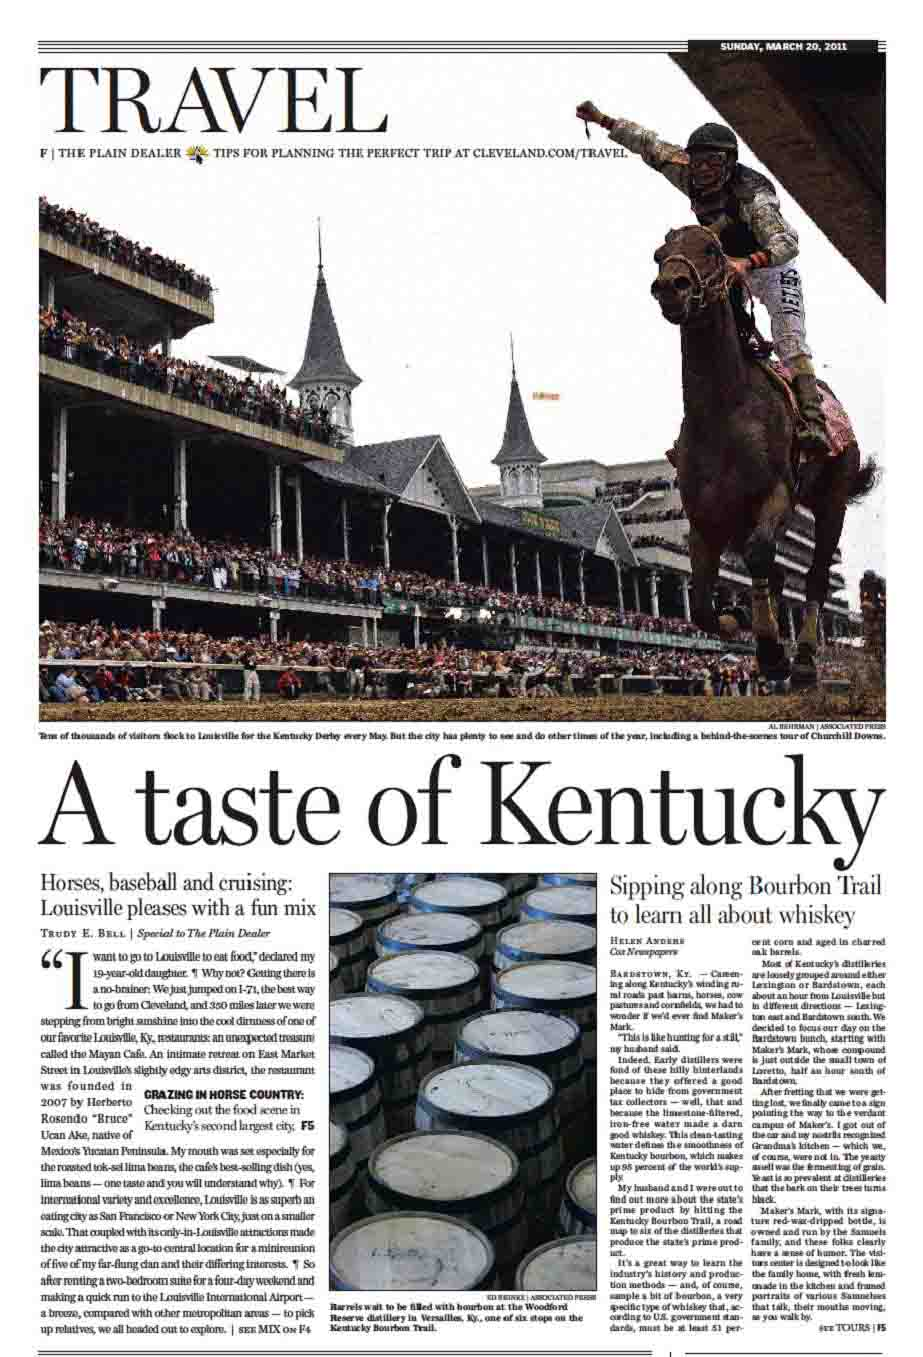 Sunday Travel cover feature on Louisville, The Plain Dealer, March 2011